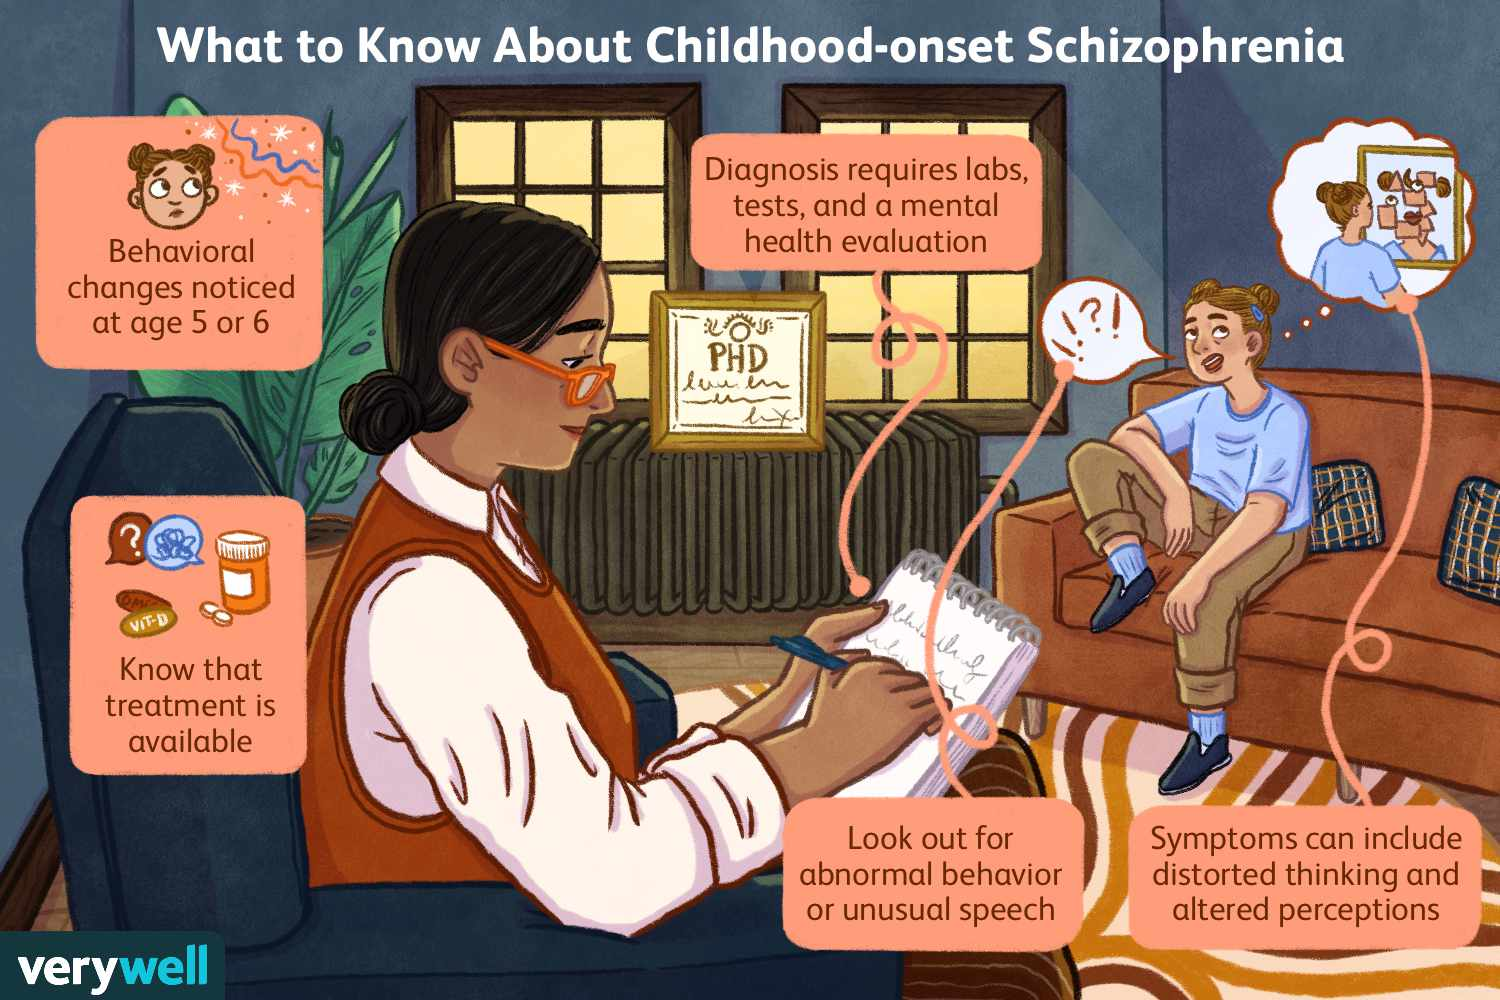 What to Know About Childhood-onset Schizophrenia